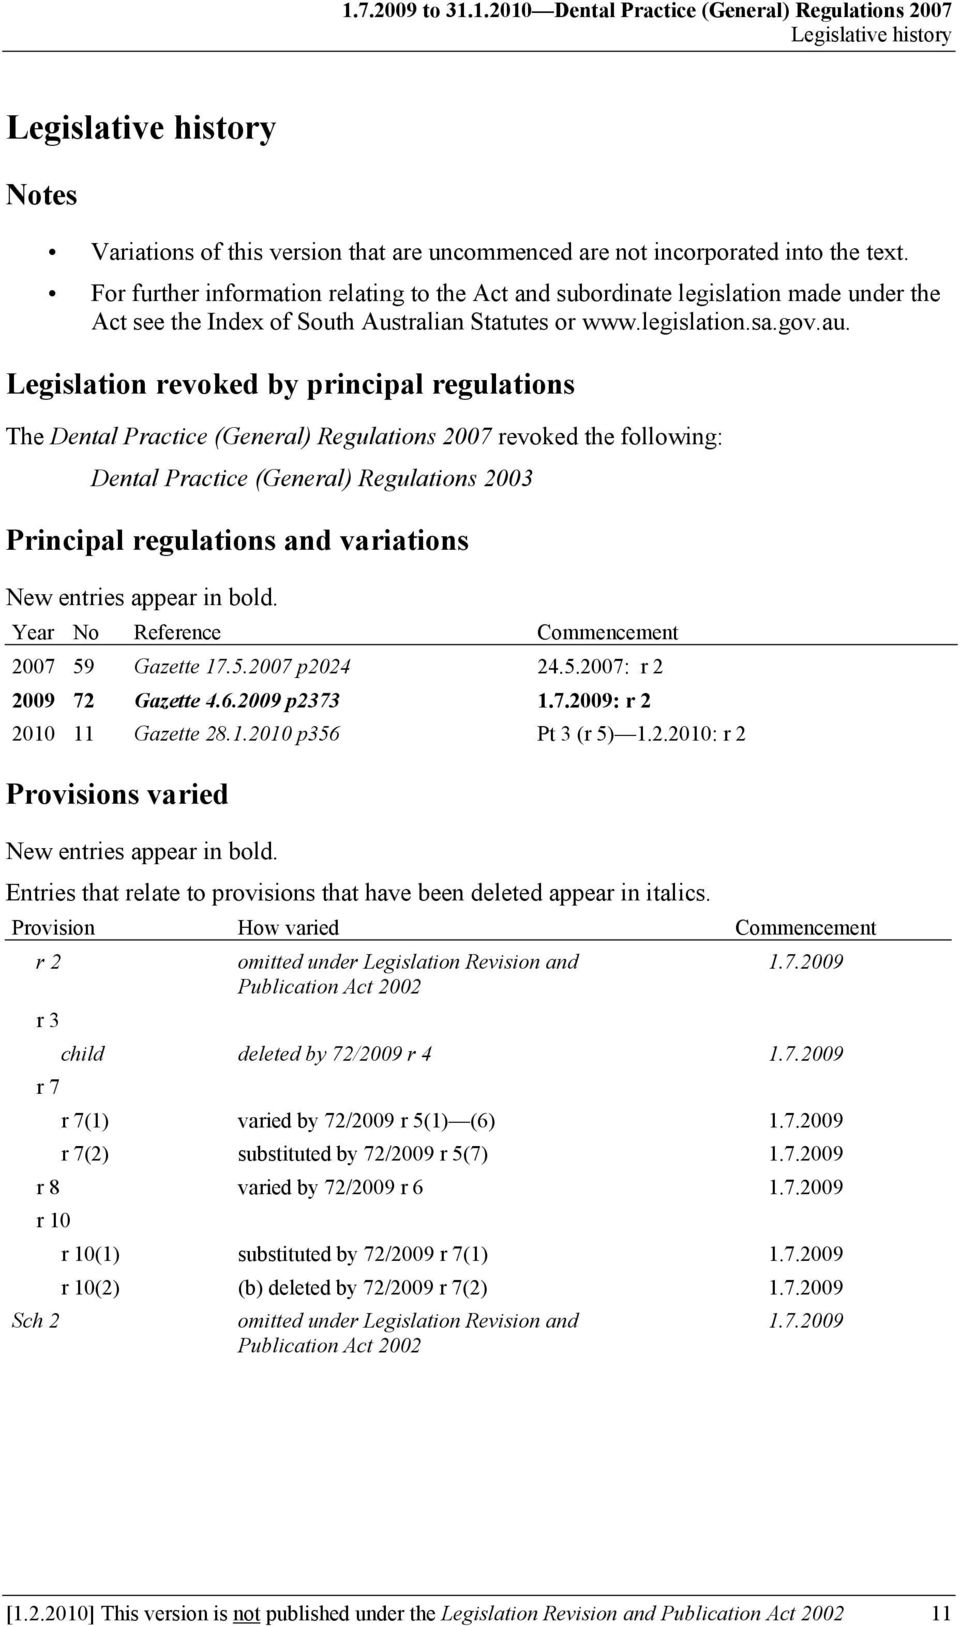 Legislation revoked by principal regulations The Dental Practice (General) Regulations 2007 revoked the following: Dental Practice (General) Regulations 2003 Principal regulations and variations New